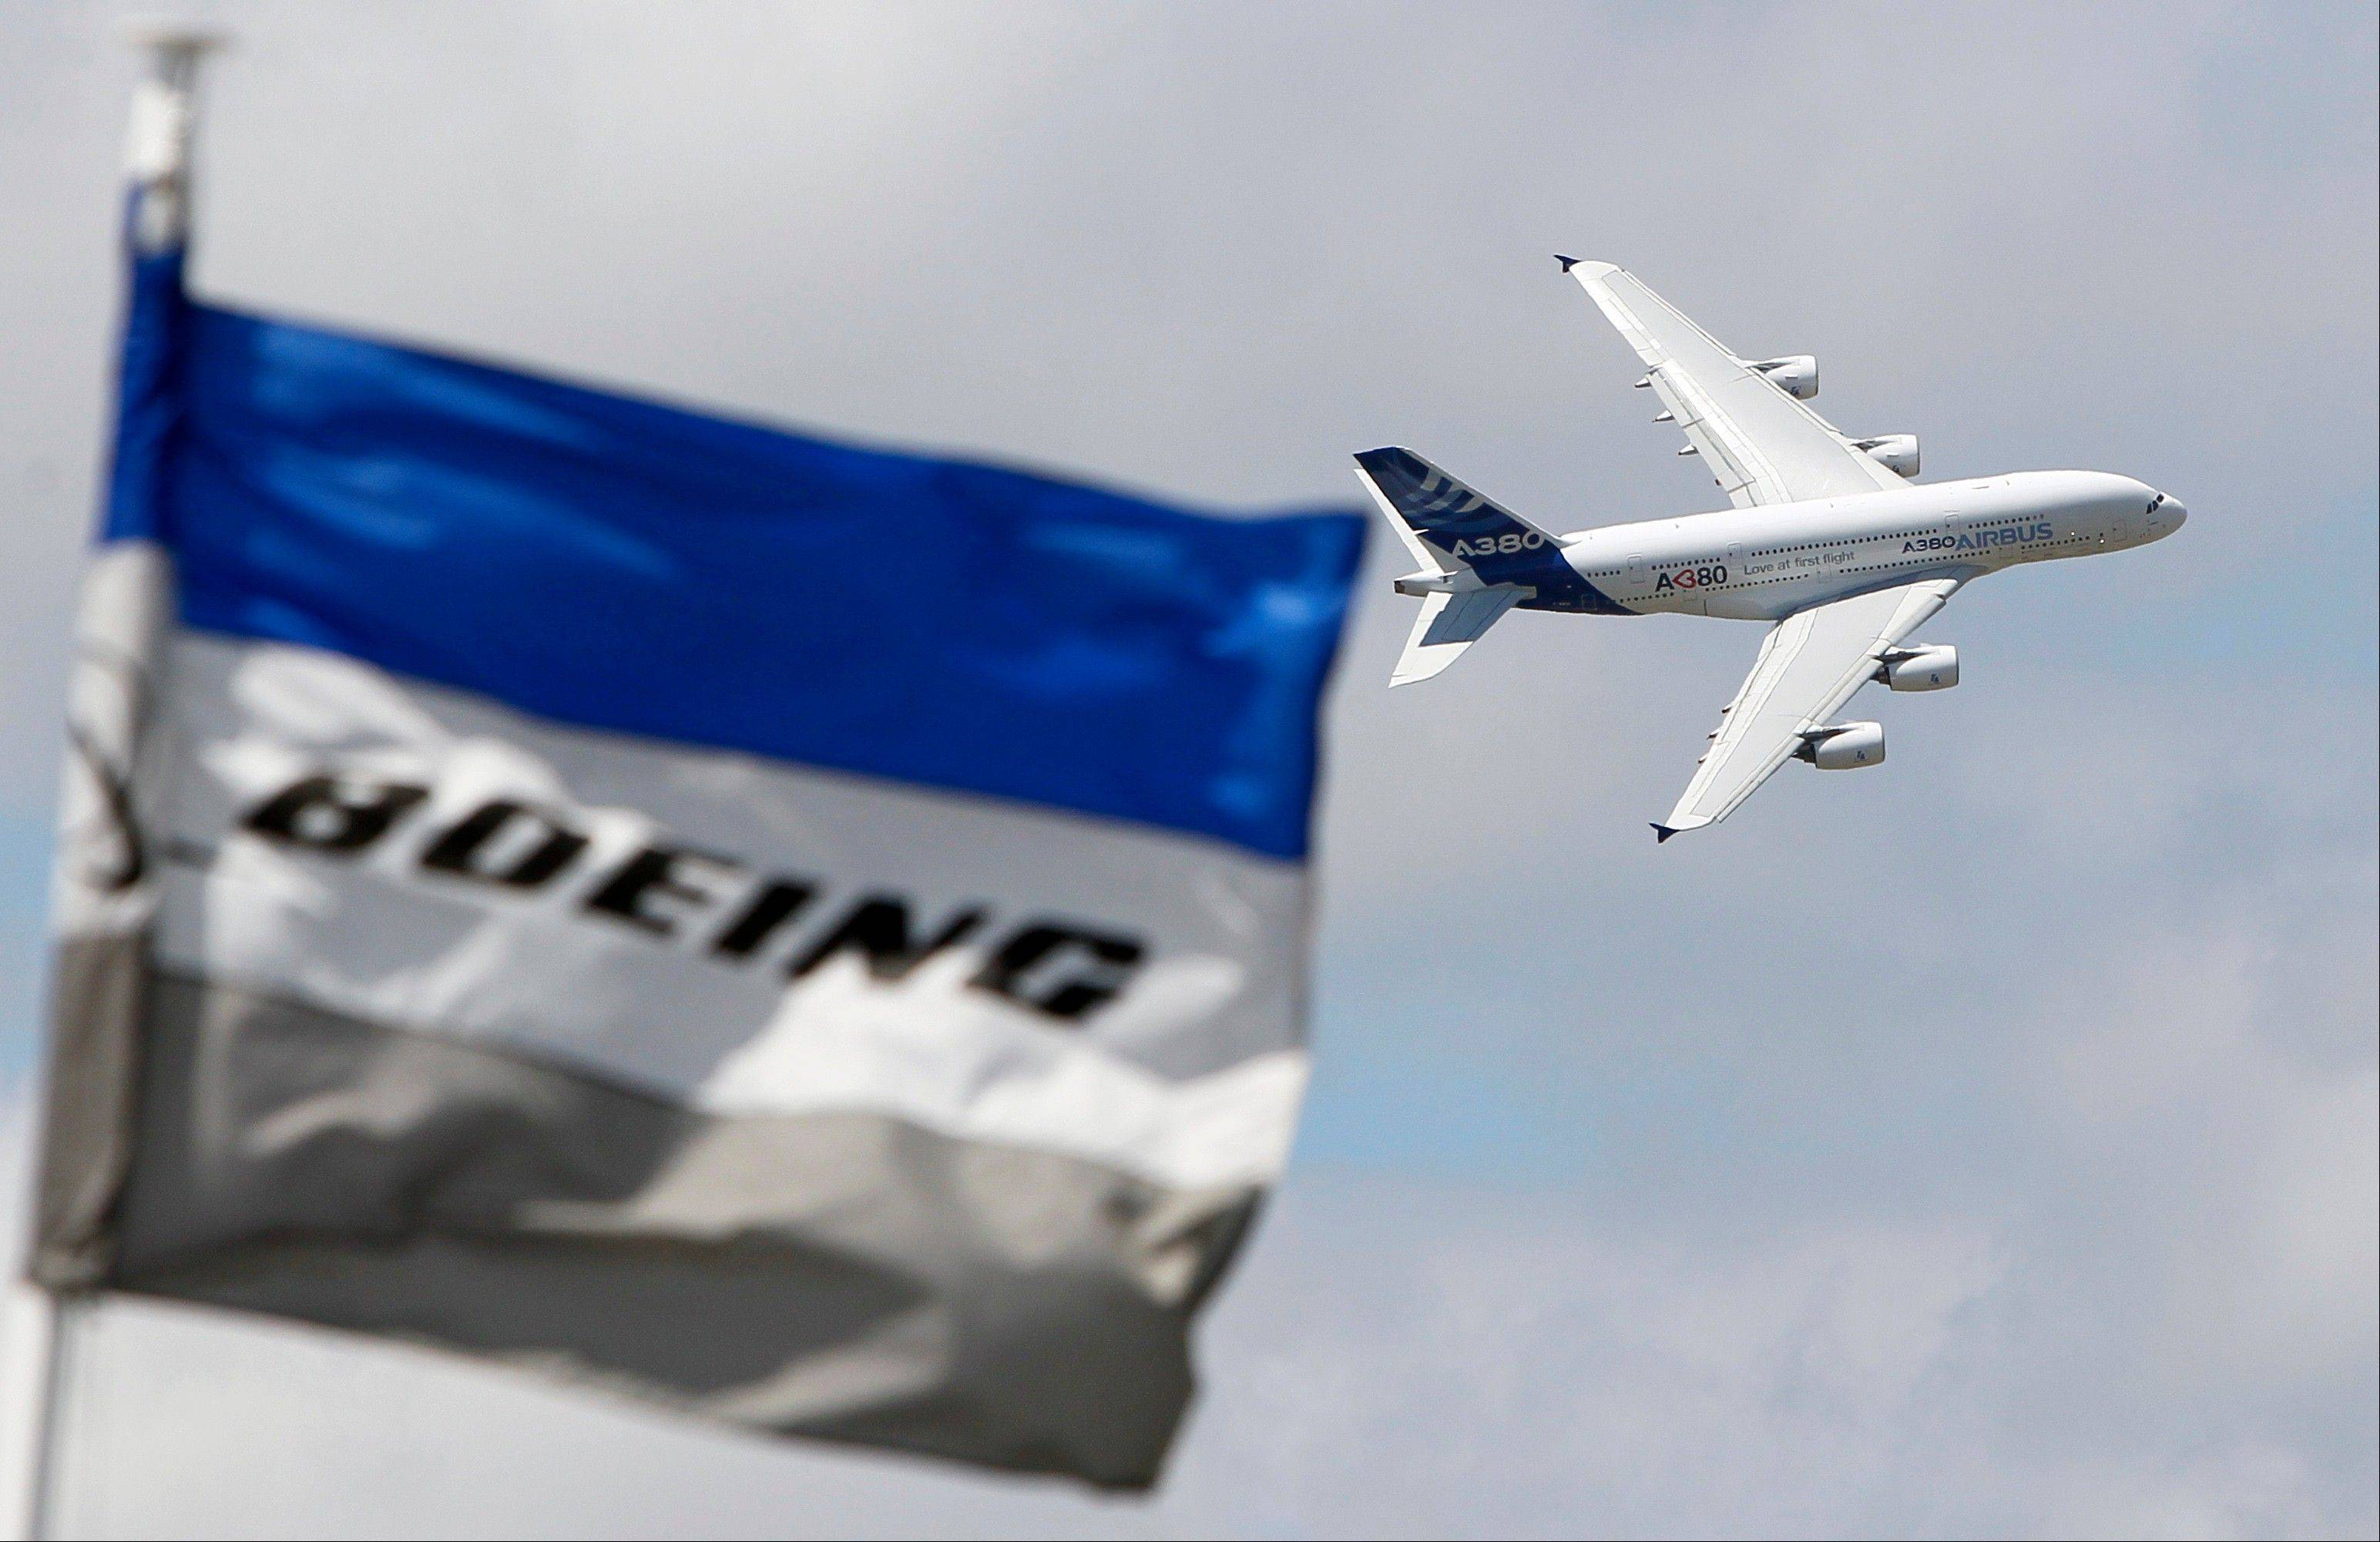 FILE - The June 25, 2011 file photo shows a Boeing flag fluttering as an Airbus A380 flies past during a demonstration flight at the 49th Paris Air Show at Le Bourget airport, east of Paris. The European Union seeks some US$ 12 billion in sanctions against the United States as part of a long-running dispute before the World Trade Organization involving subsidies to plane makers Airbus and Boeing. The Geneva-based trade body said Thursday, Sept. 27, 2012 that the EU plans request on Oct. 23 the right to impose the sanctions. (AP Photo/Francois Mori)